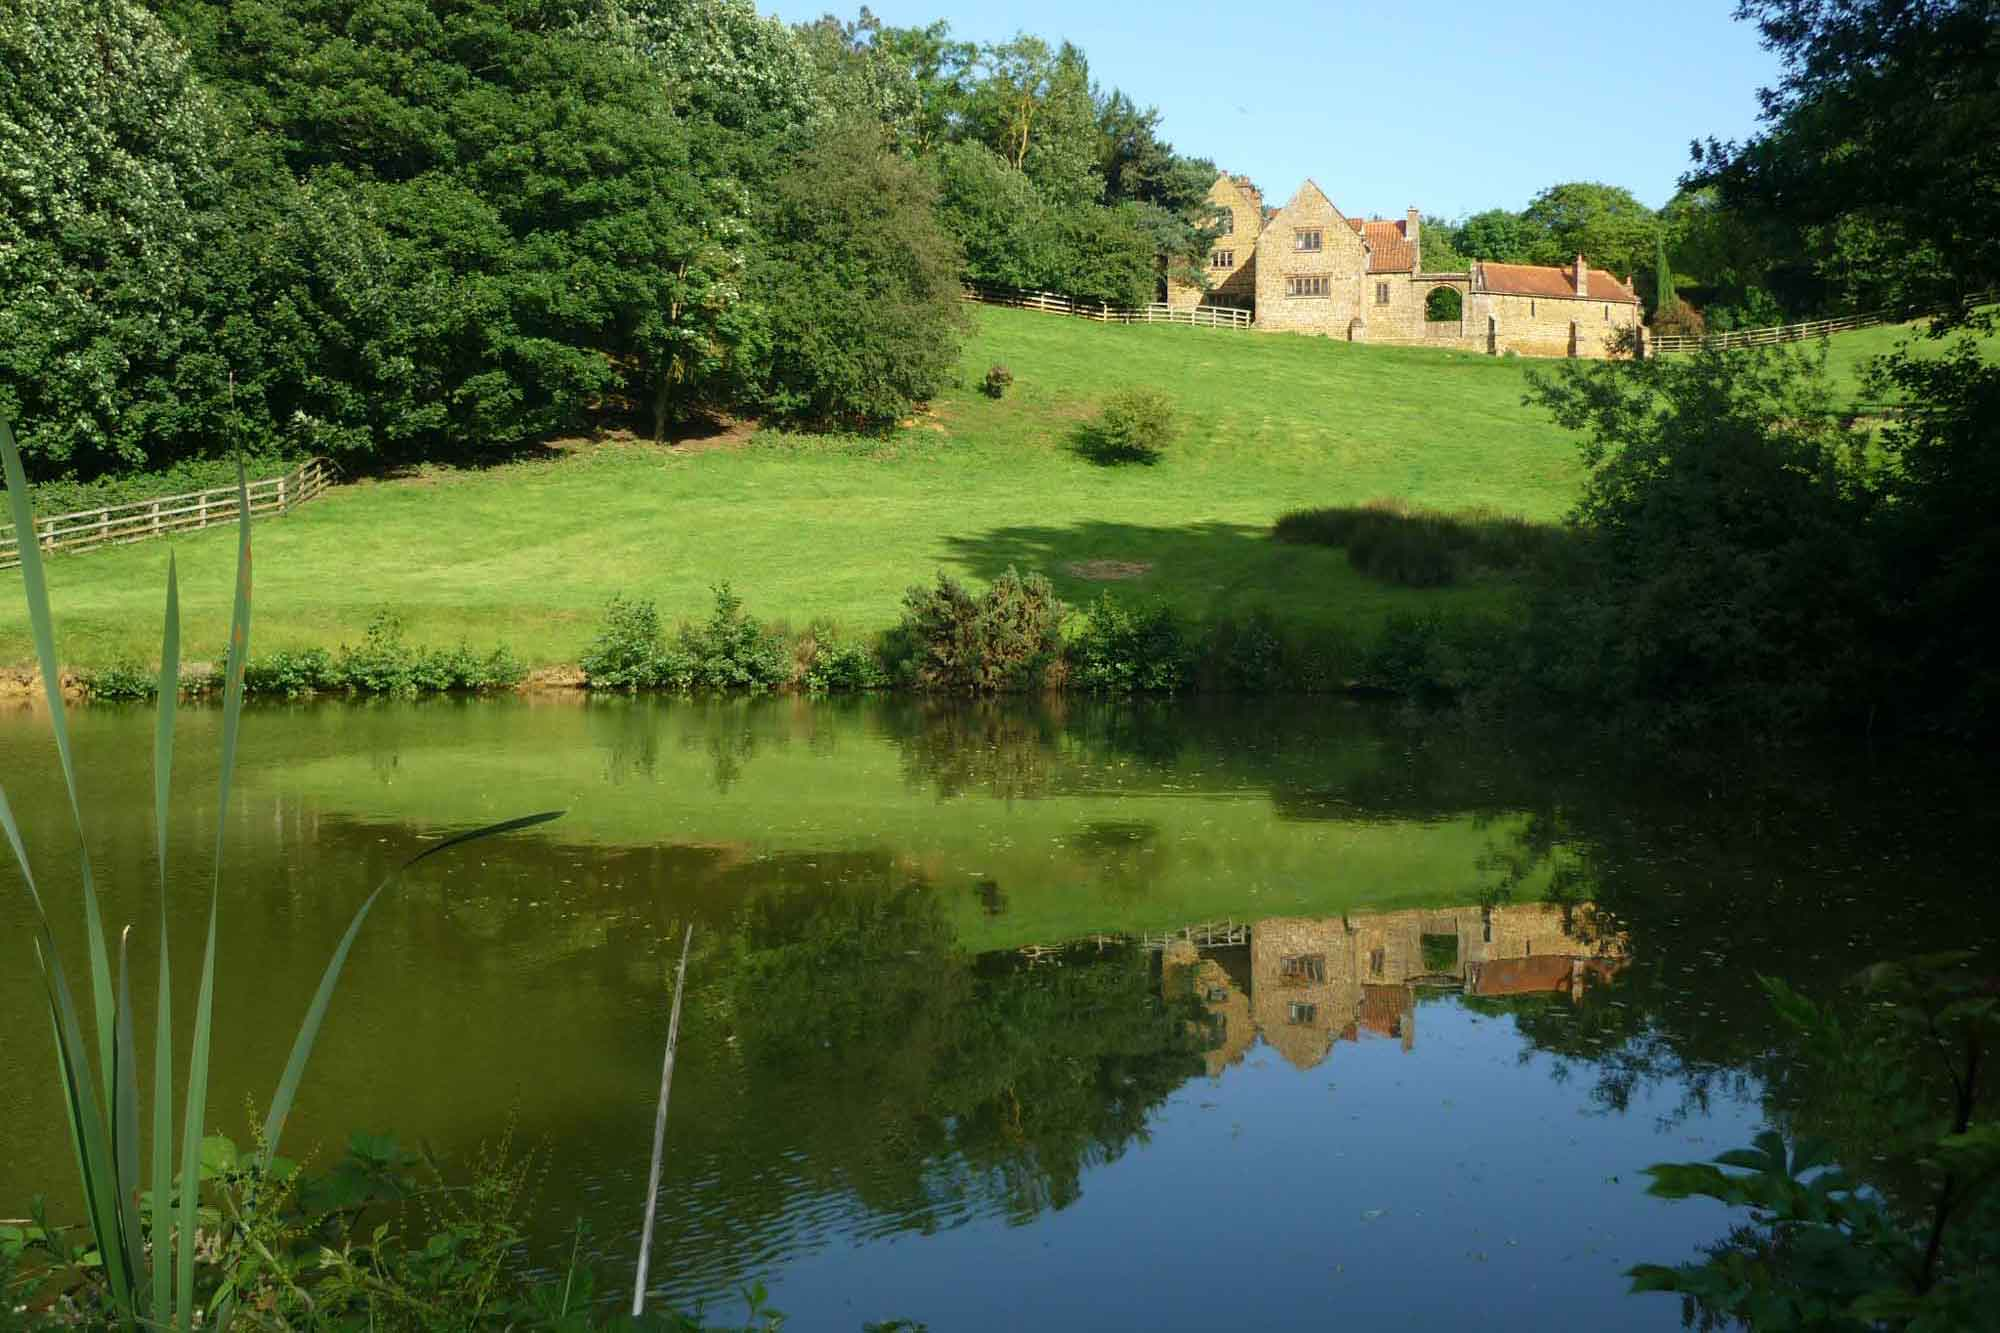 Heath Farm Holiday Cottages reflection in pond